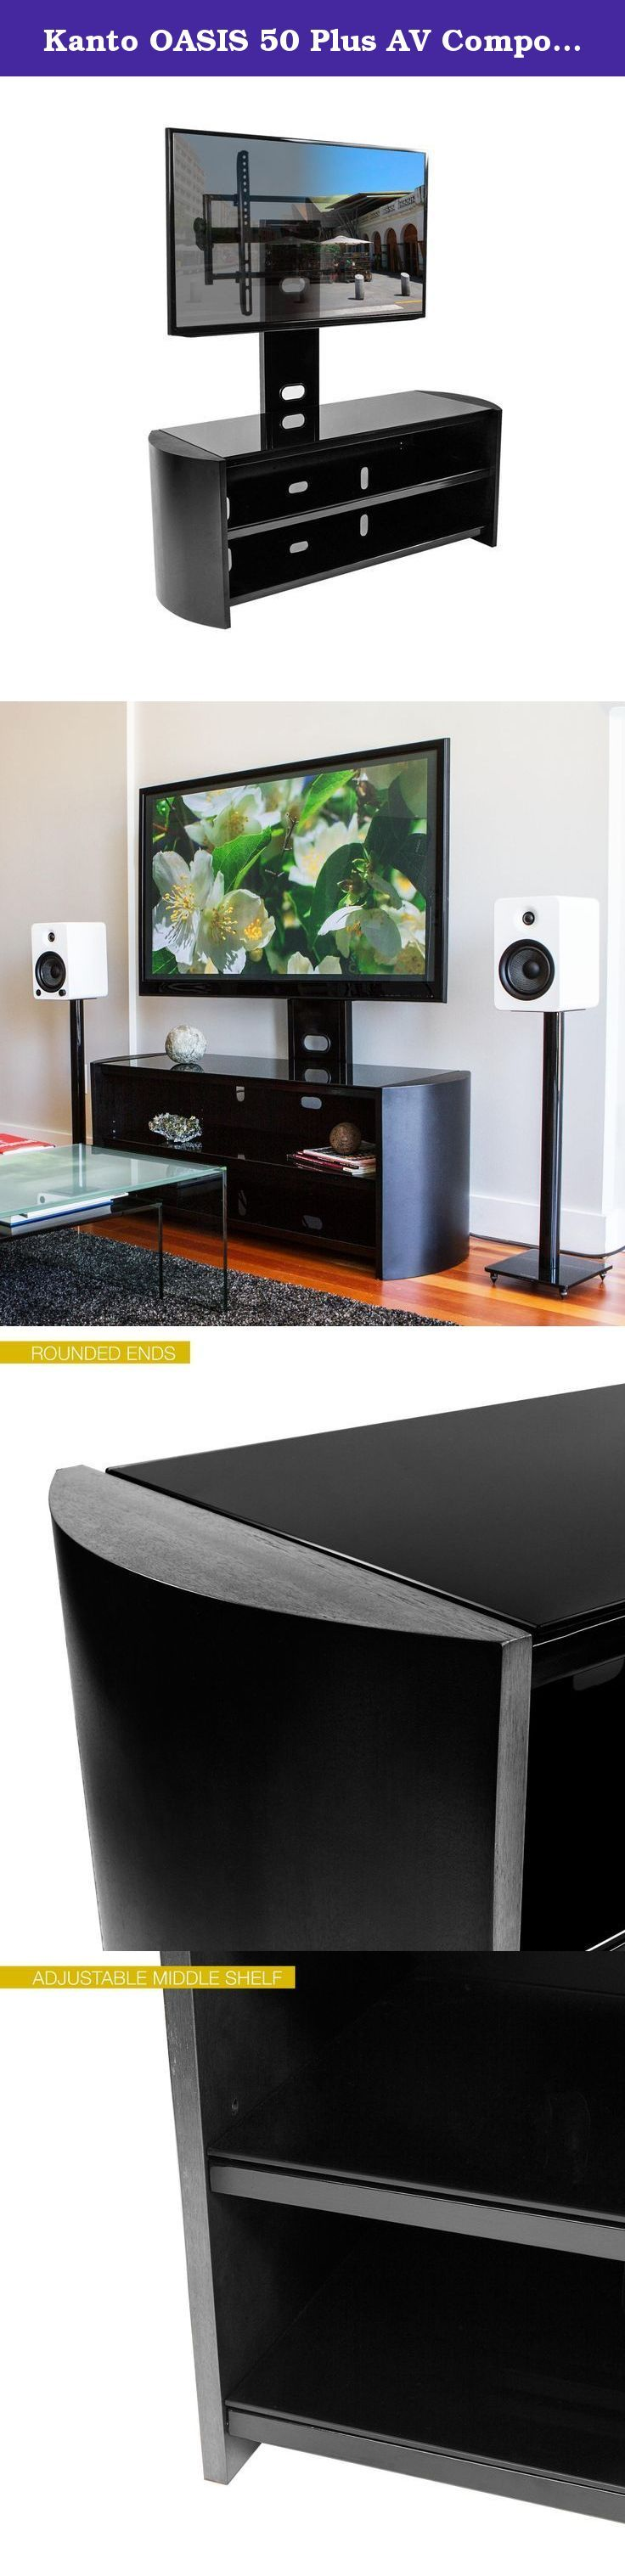 """Kanto OASIS 50 Plus AV Component Stand With TV Mount For 37 to 70-Inch Displays, Tempered Glass Shelves, Black. Kanto OASIS Plus is a sophisticated wood and glass shelf audio video component stand with a built-in TV mount for 37"""" to 70"""" TVs. OASIS Plus offers three tempered black glass shelves and is available in a variety of finishes. It is an attractive and functional piece for any home. Simple assembly and handy cable management ensure a quick and professional-looking home…"""